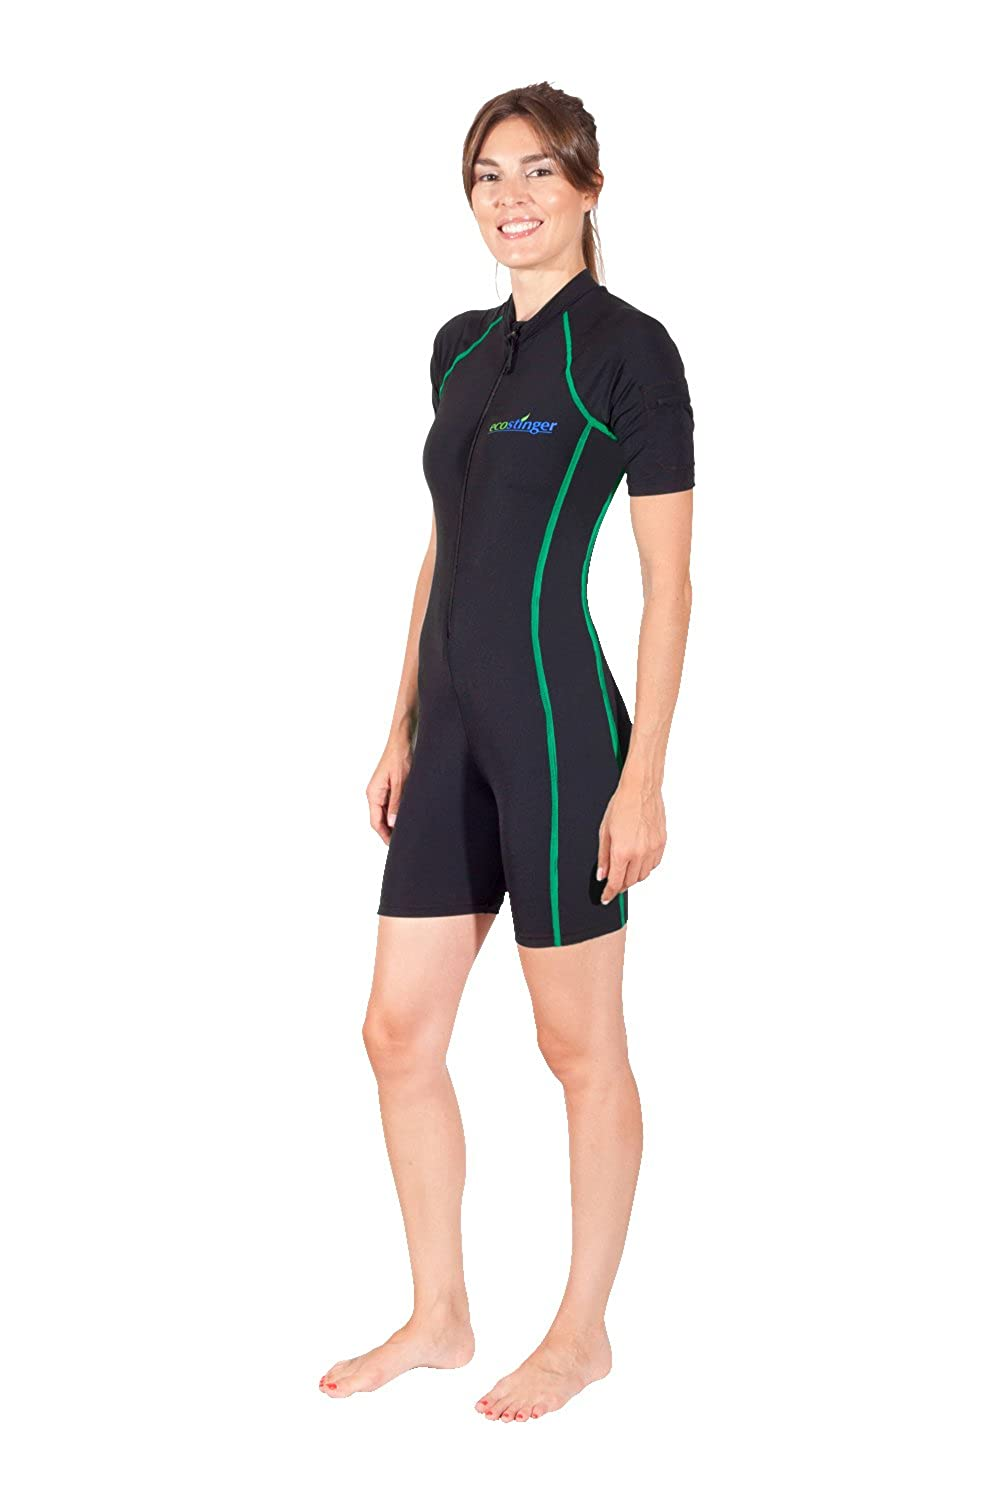 Women Full Body UV Protection Swim Sun Suit Short Sleeves With Pocket UPF50+ EcoStinger A101-CS